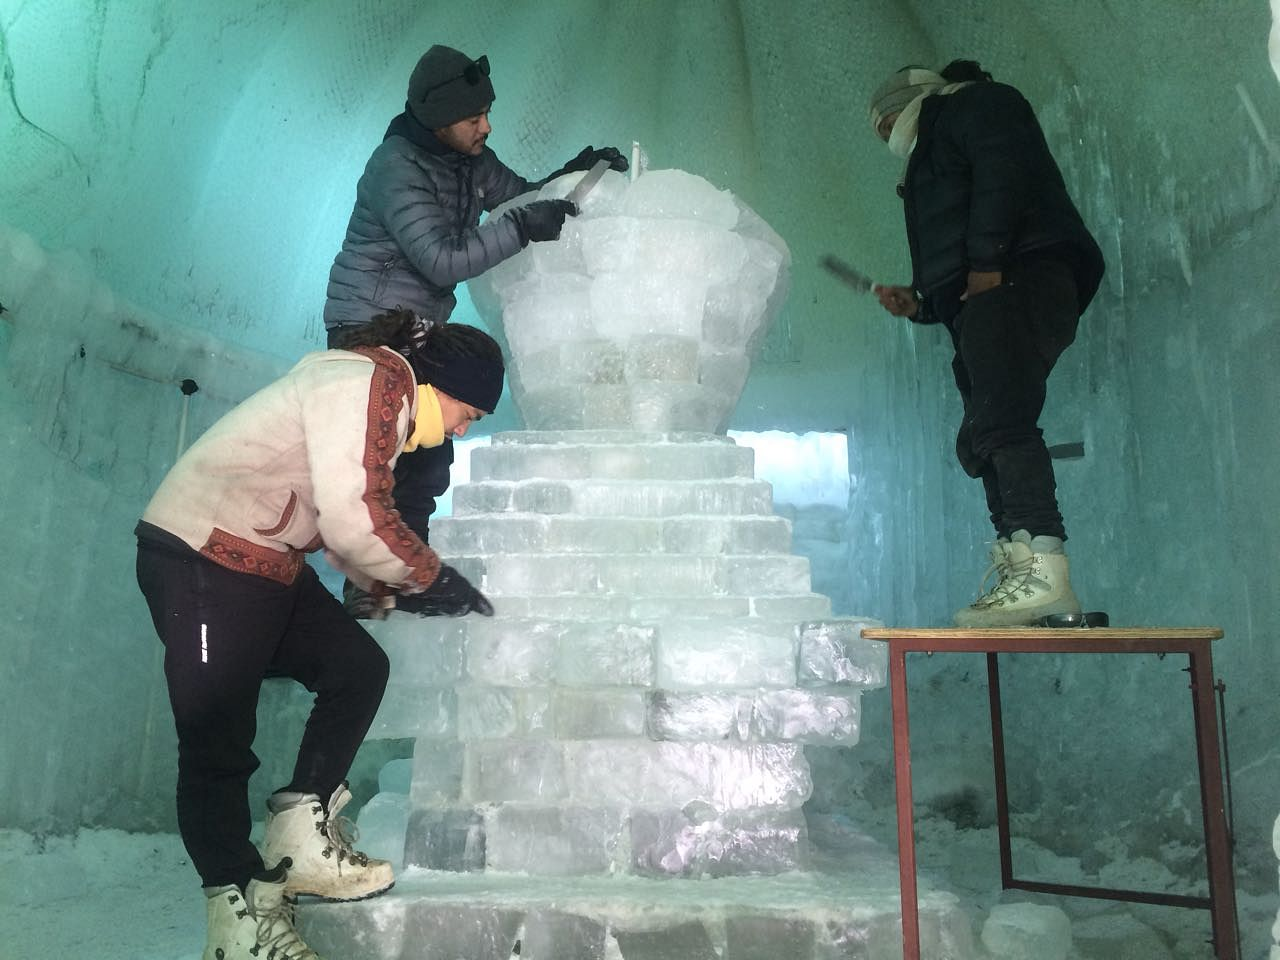 The three artists working on the Ice Chorten (Source: Tsering Gurmet)